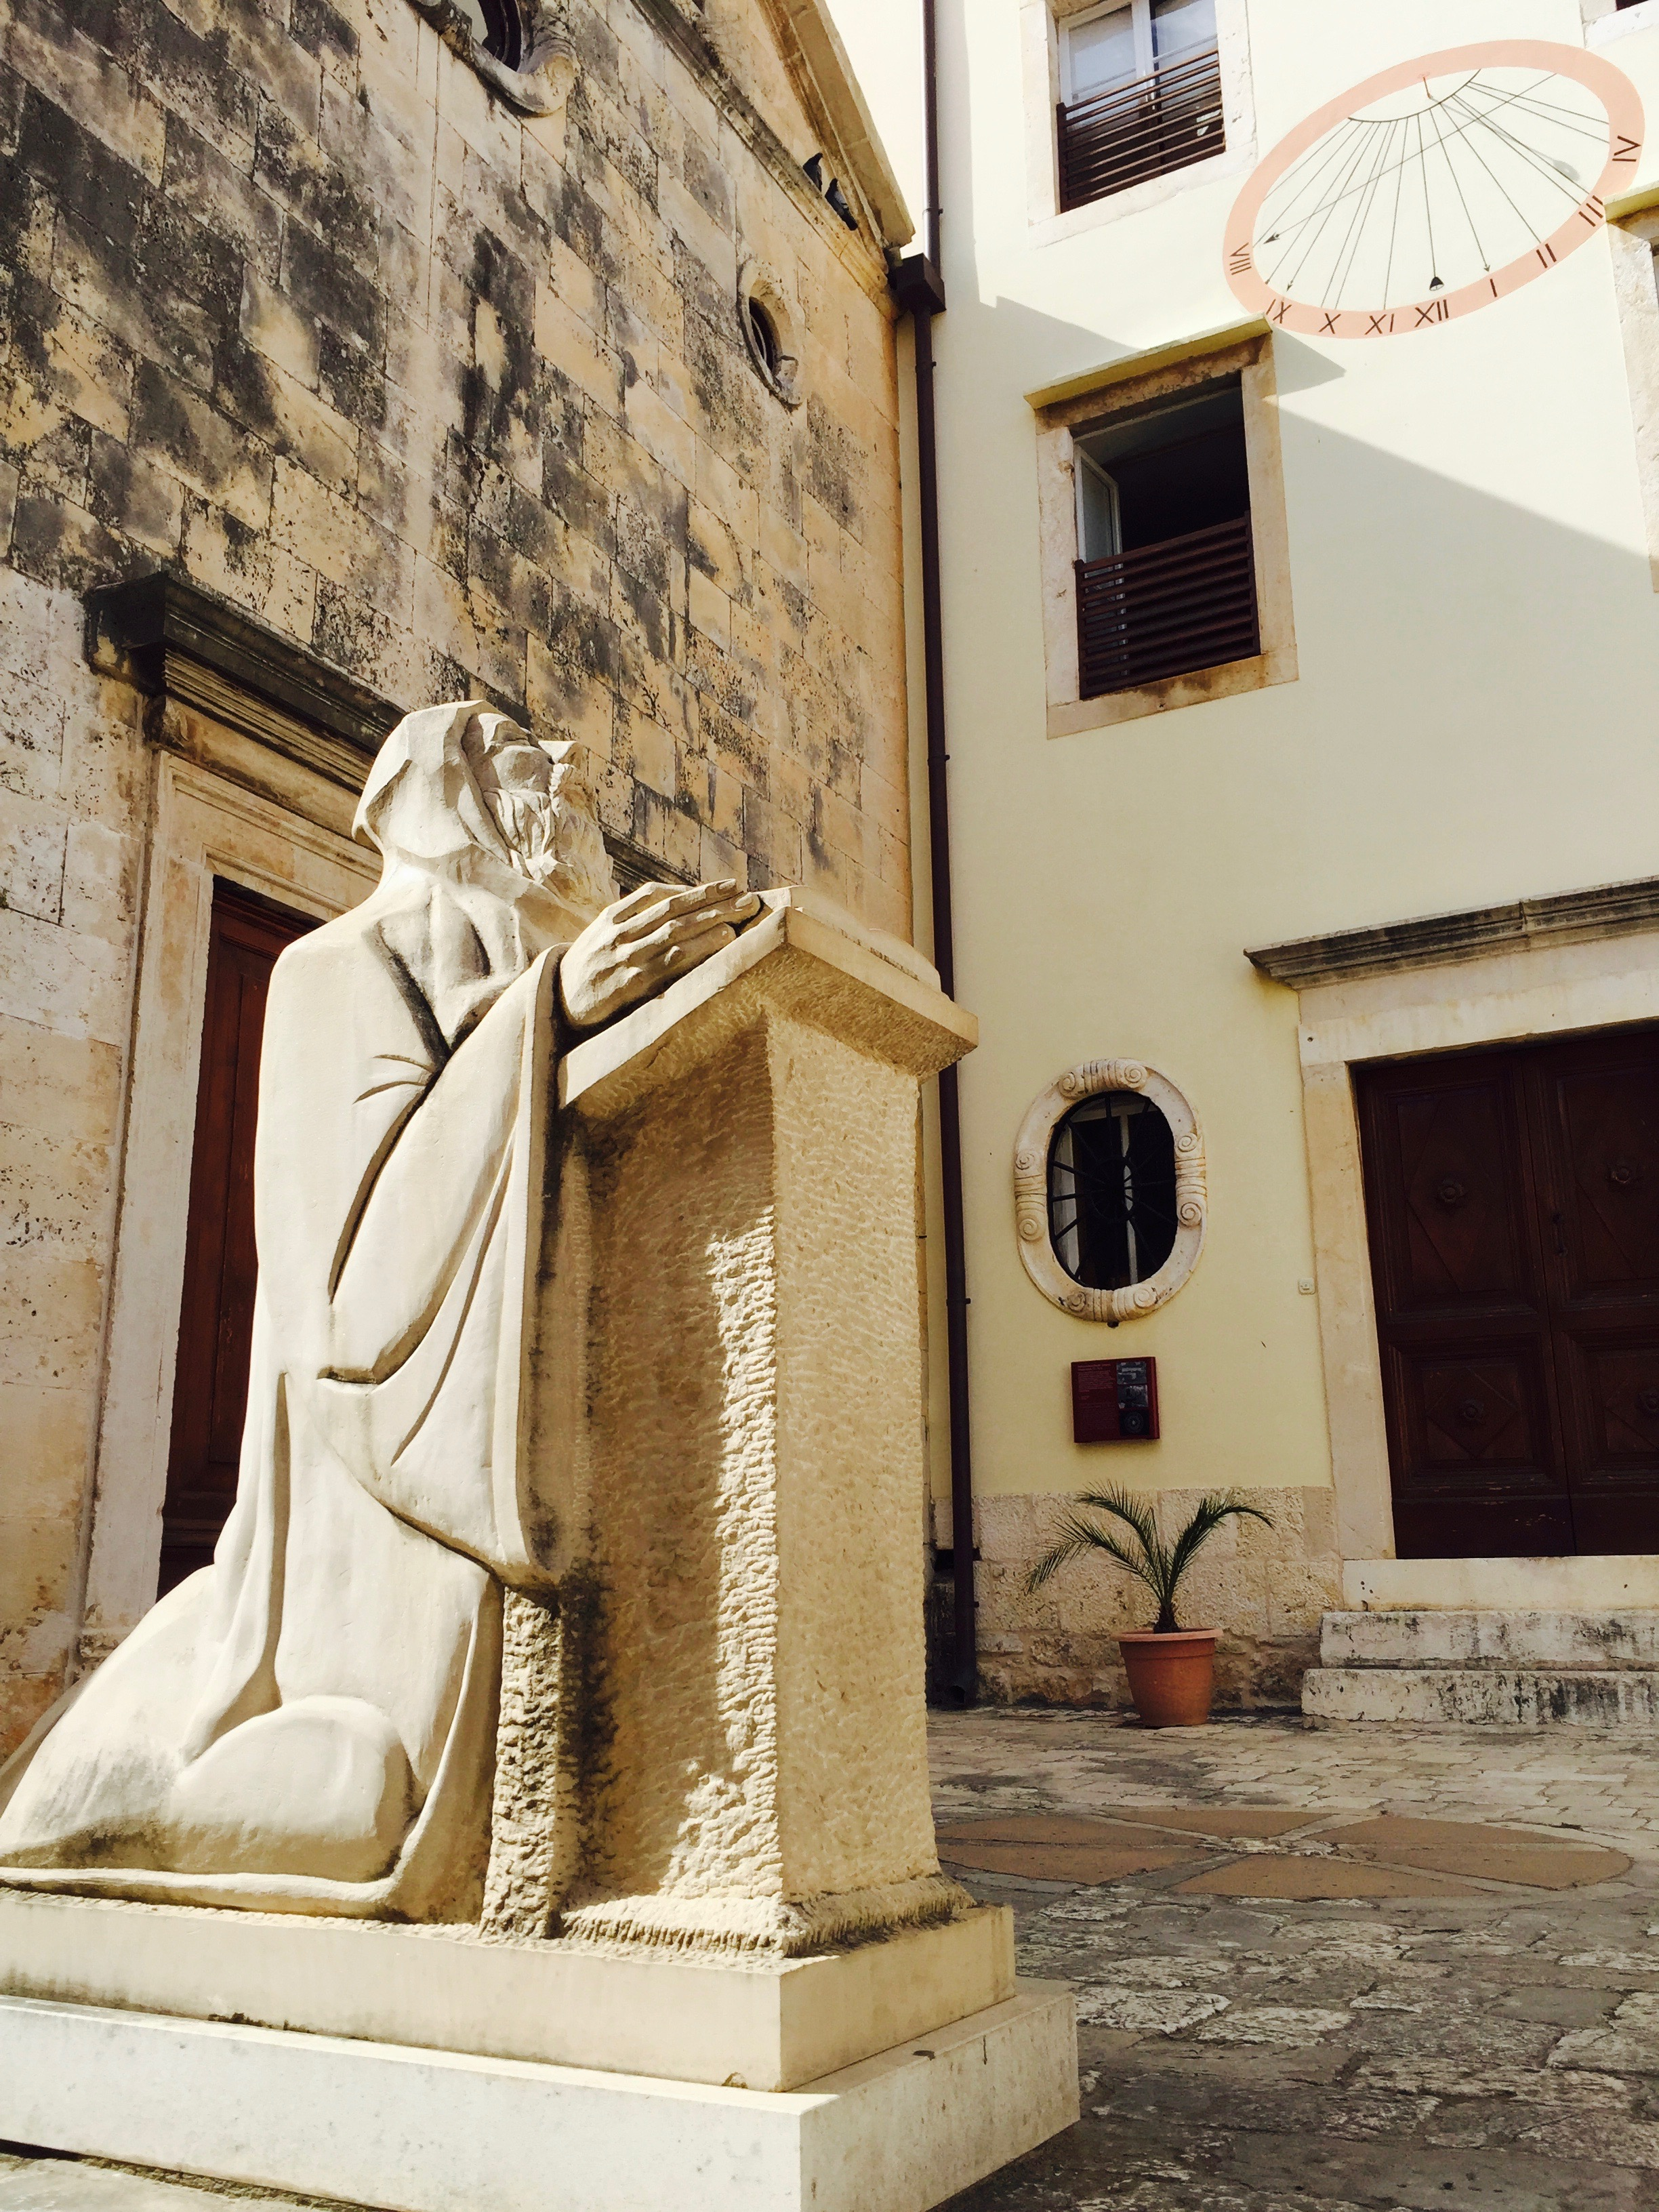 Benedictine Convent and Church of St. Anthony the Abbot, 17th-18th cent.